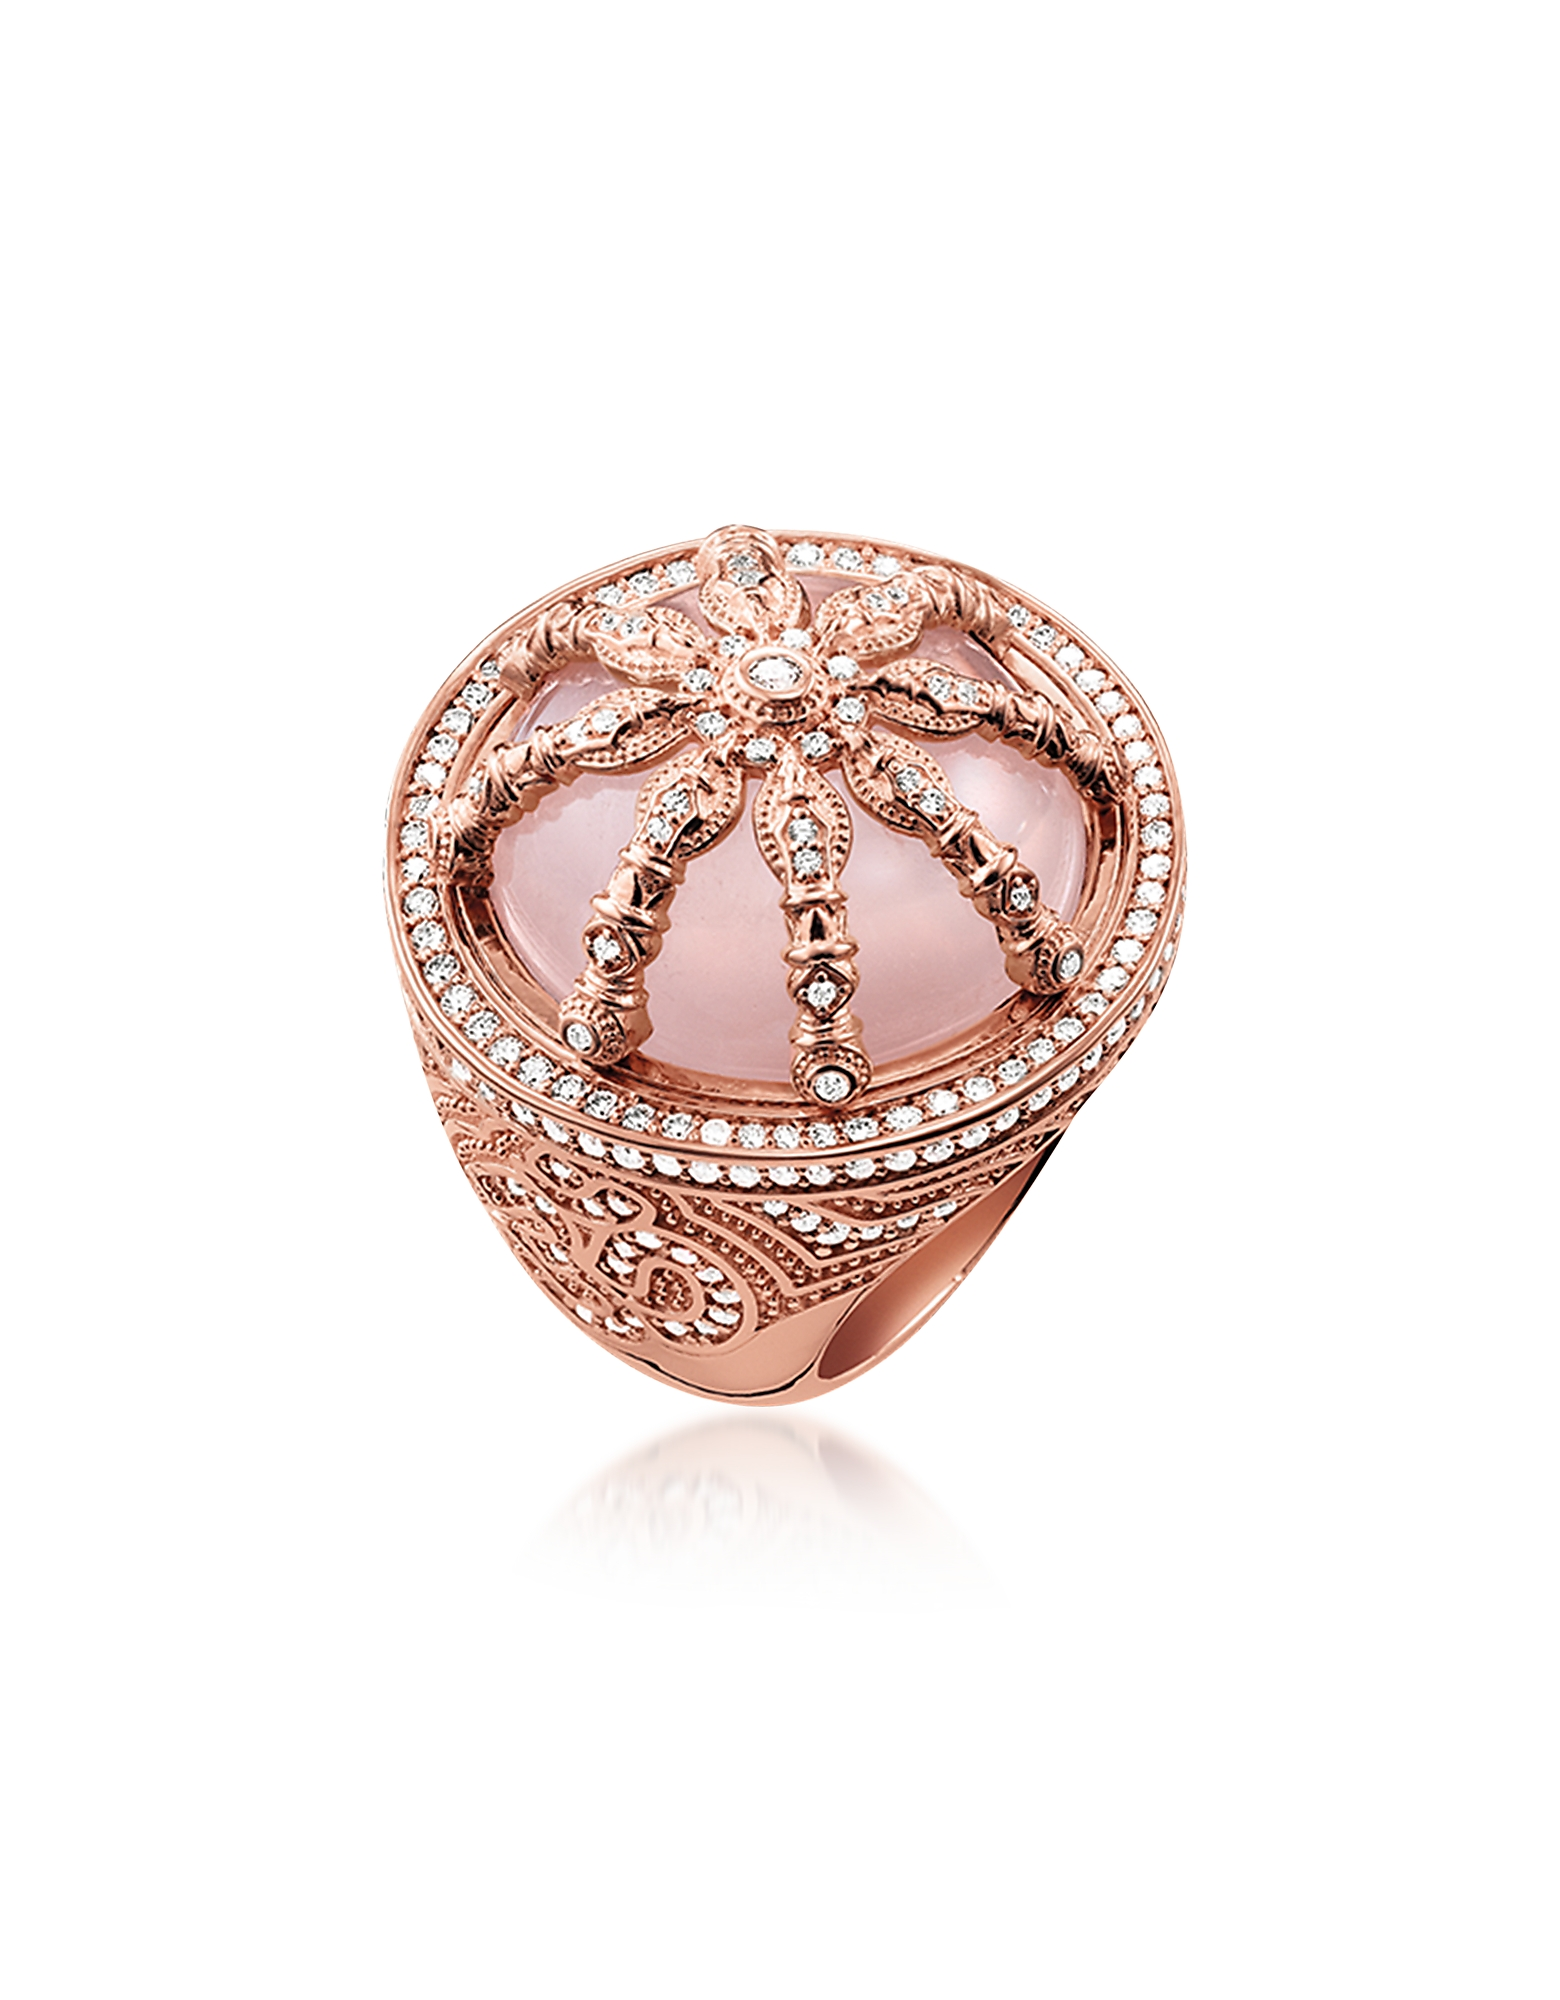 18k Rose Gold Plated Sterling Silver Ring w/White Zirconia and Rose Quartz